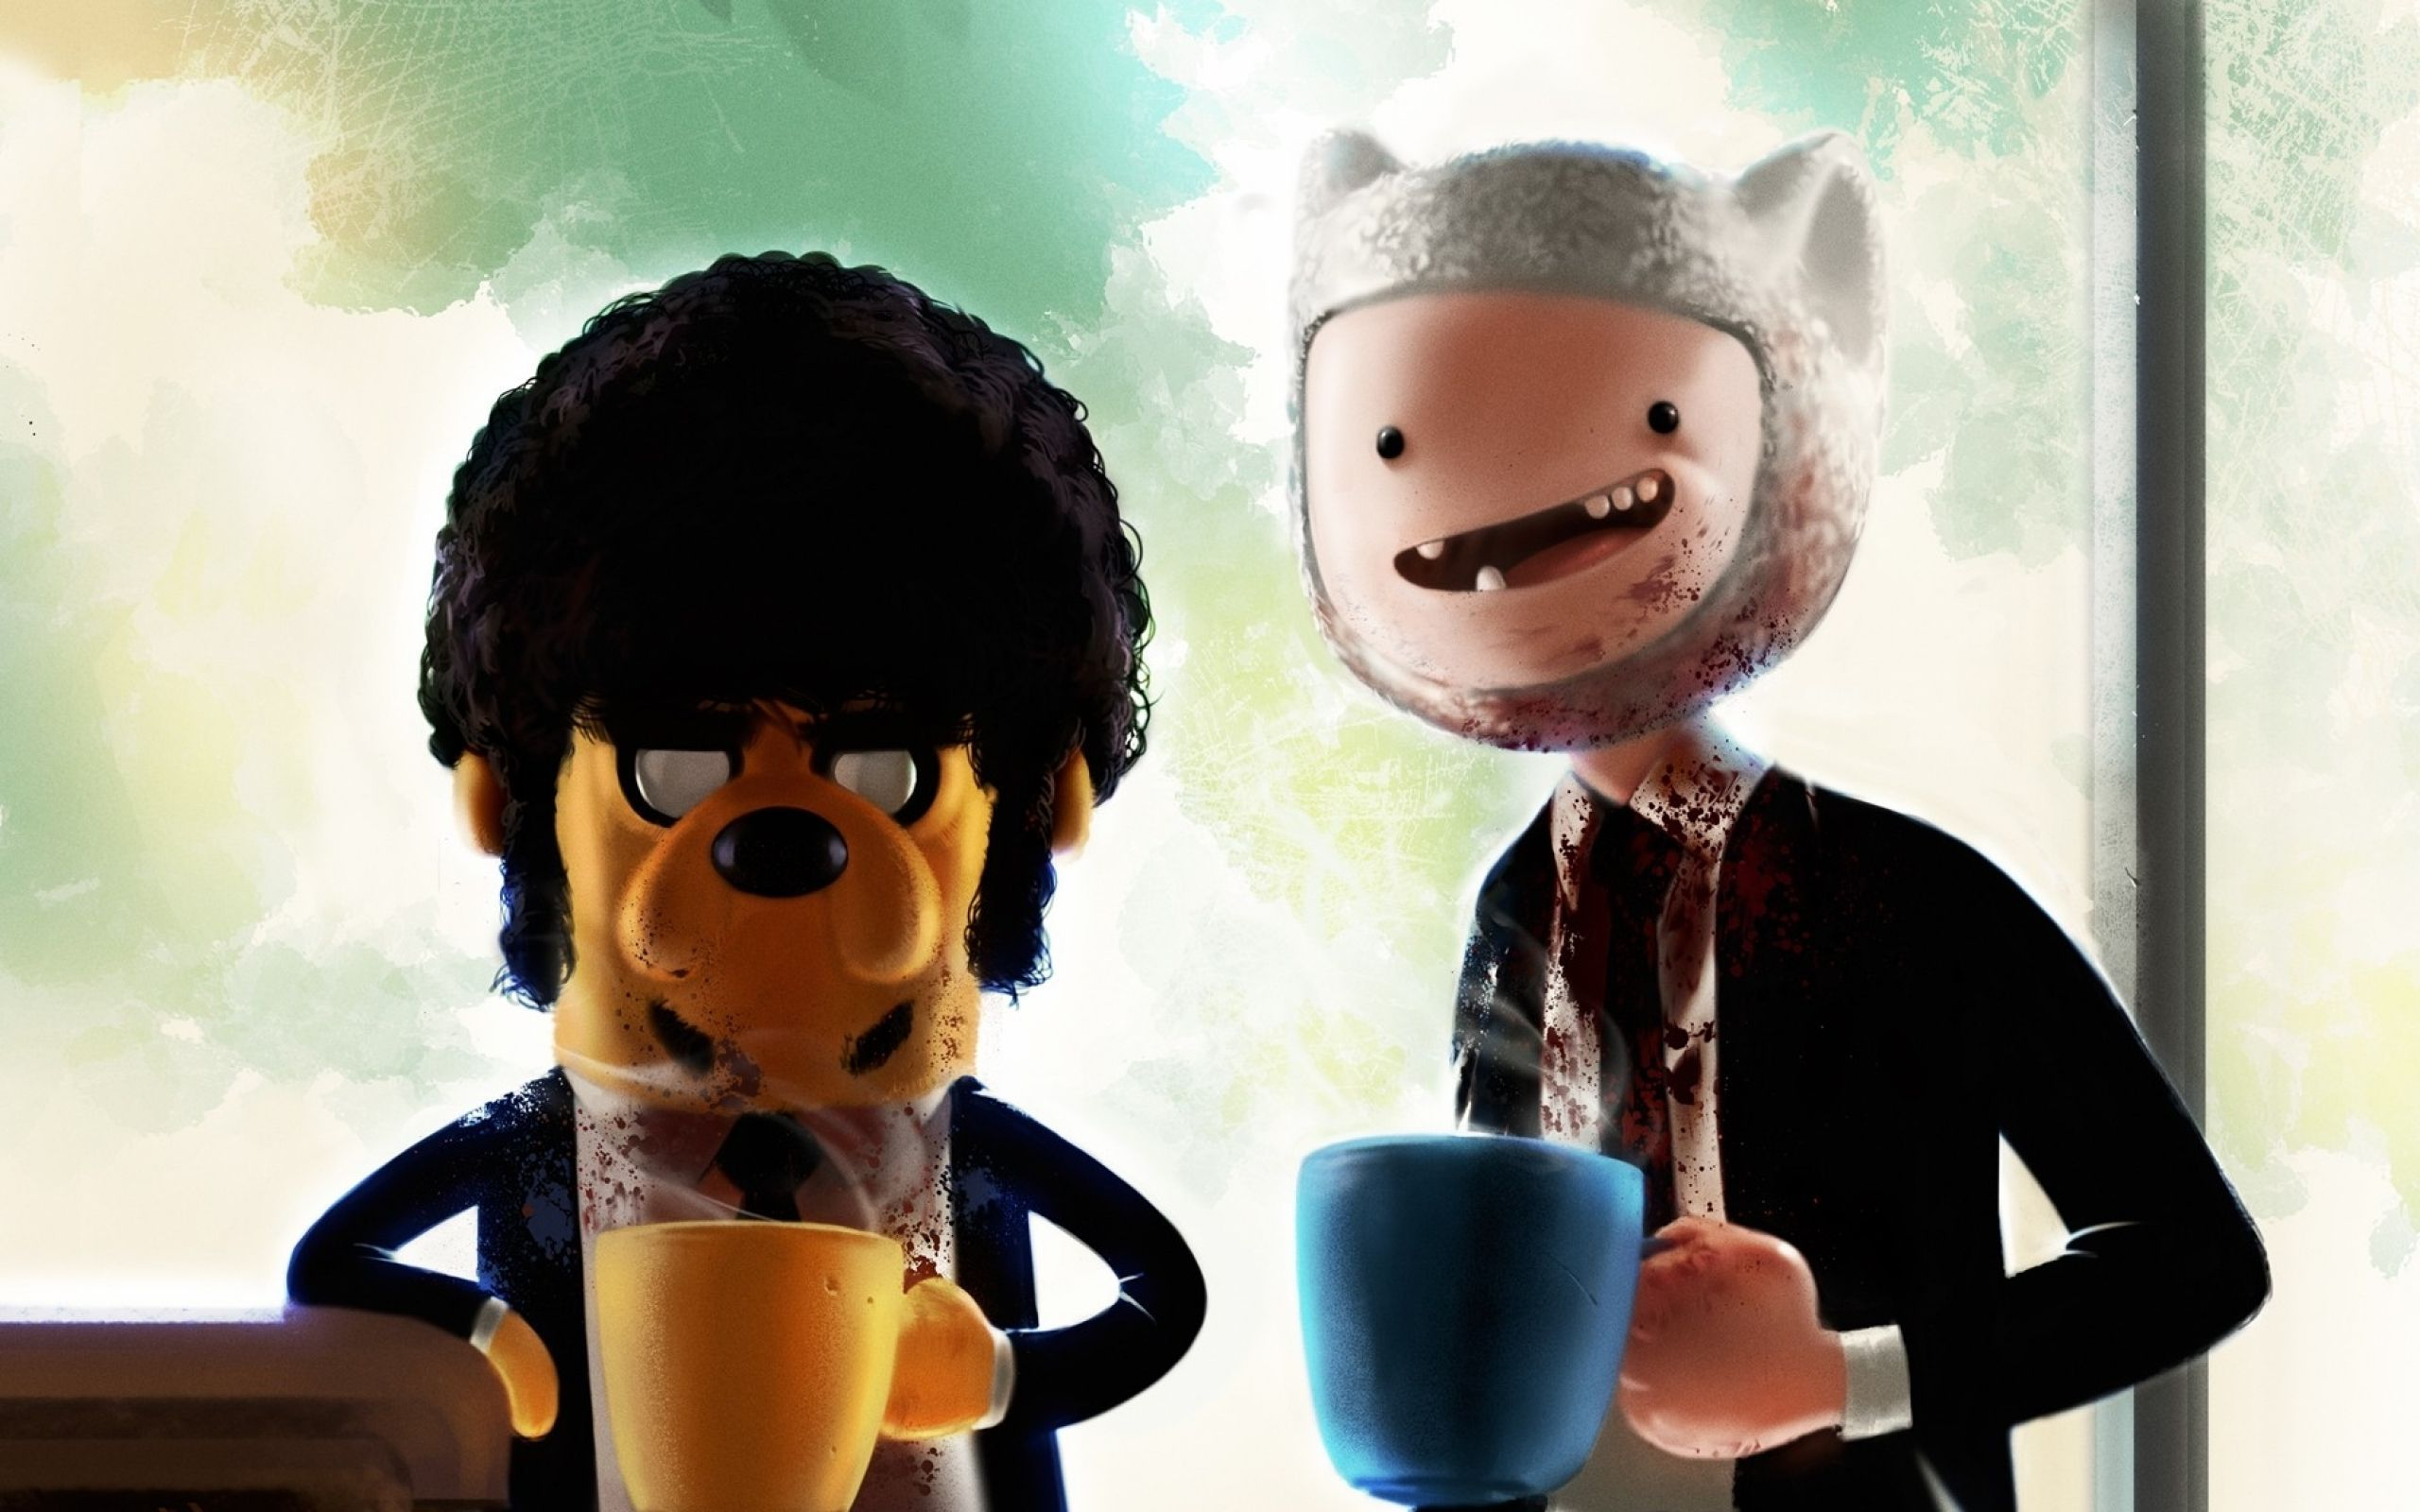 Adventure Time Pulp Fiction crossover